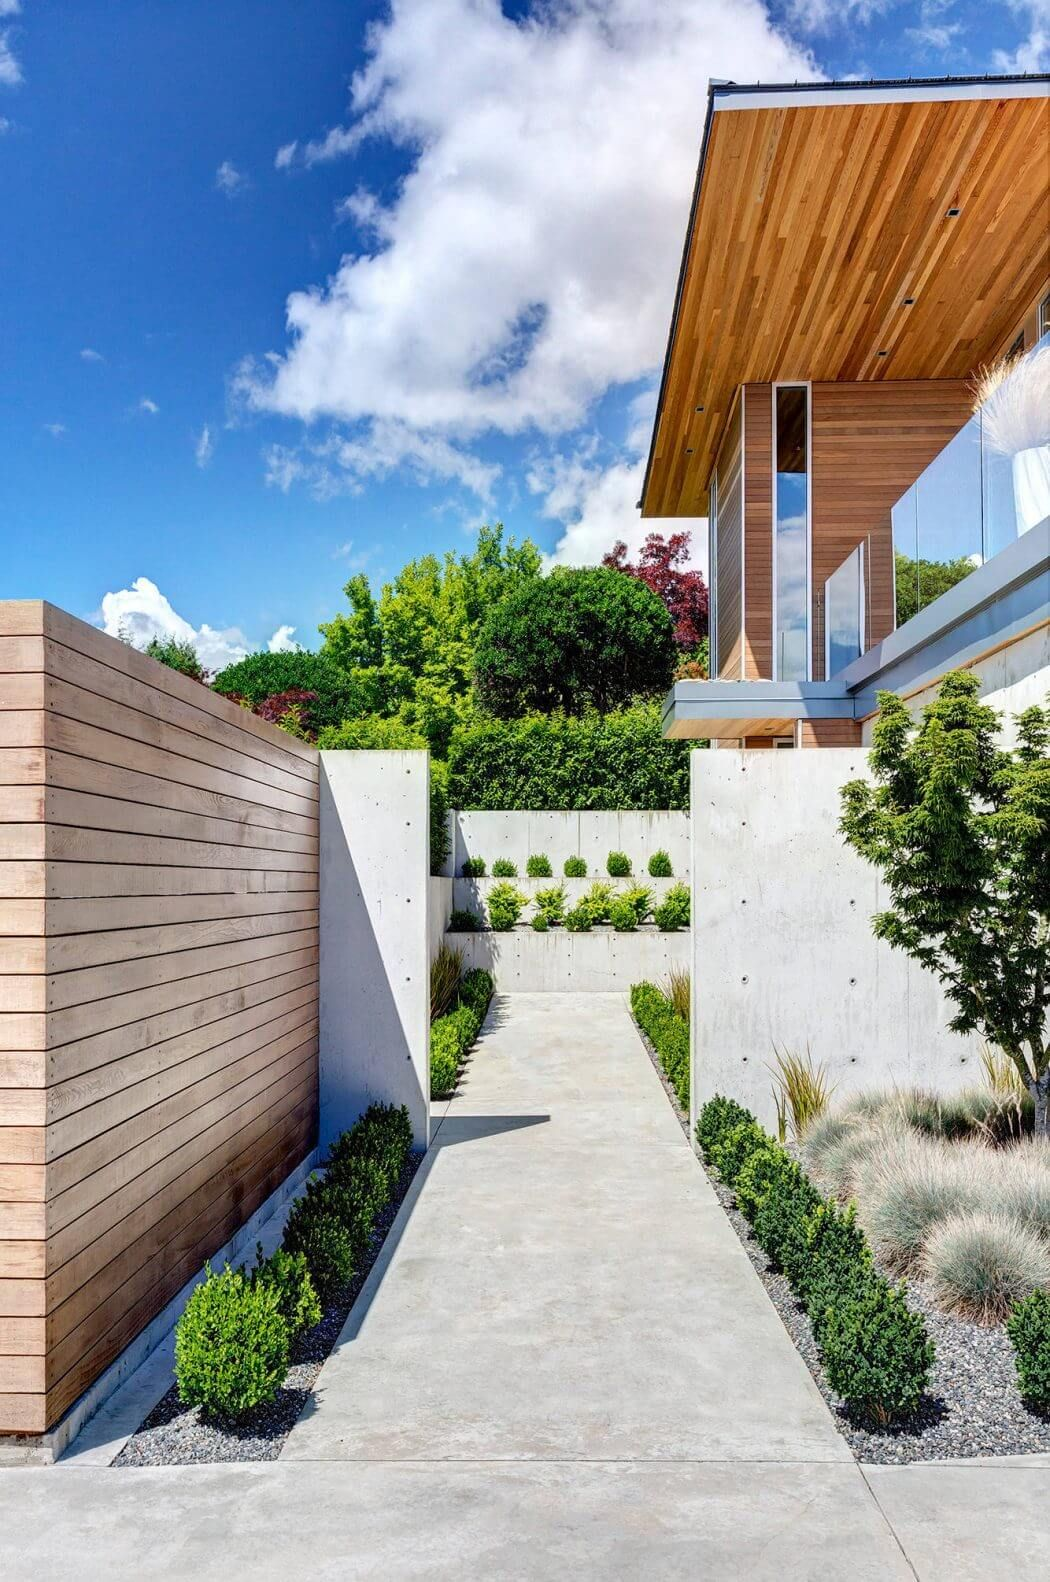 Delbrook Residence by Garret Cord Werner Architects | Misc ...